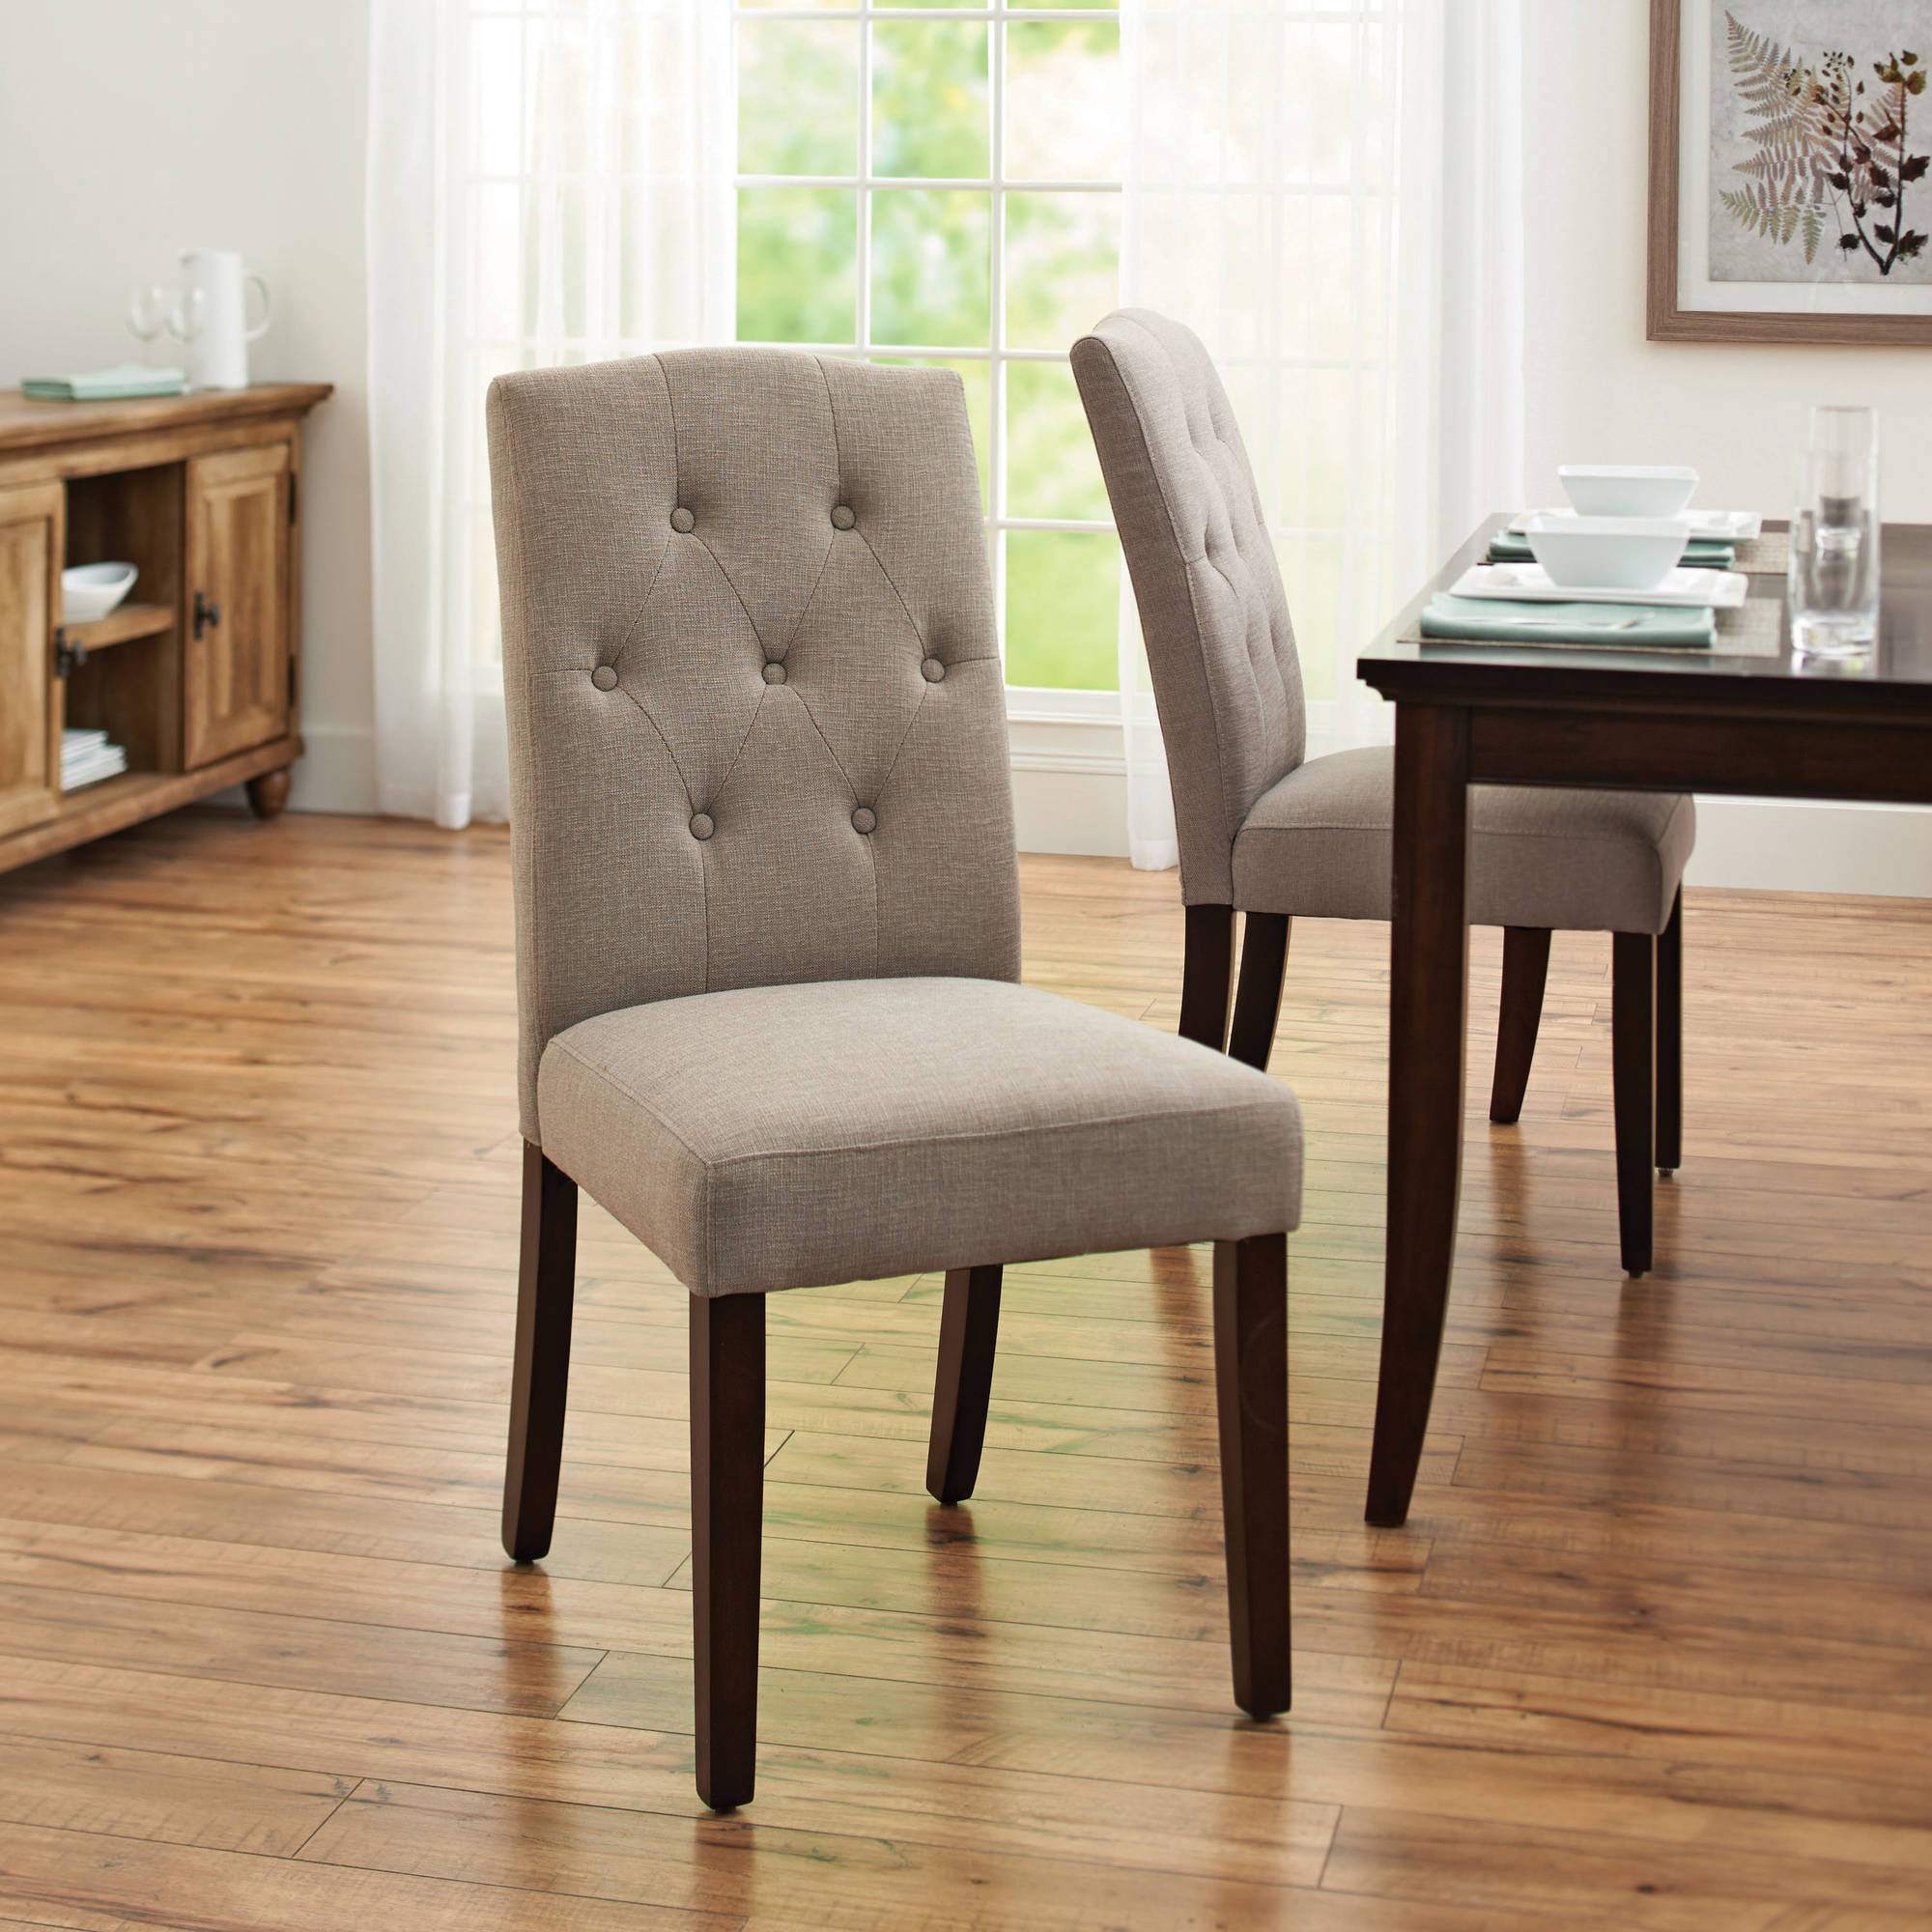 Beautiful Better Homes And Gardens Parsons Tufted Dining Chair, Taupe